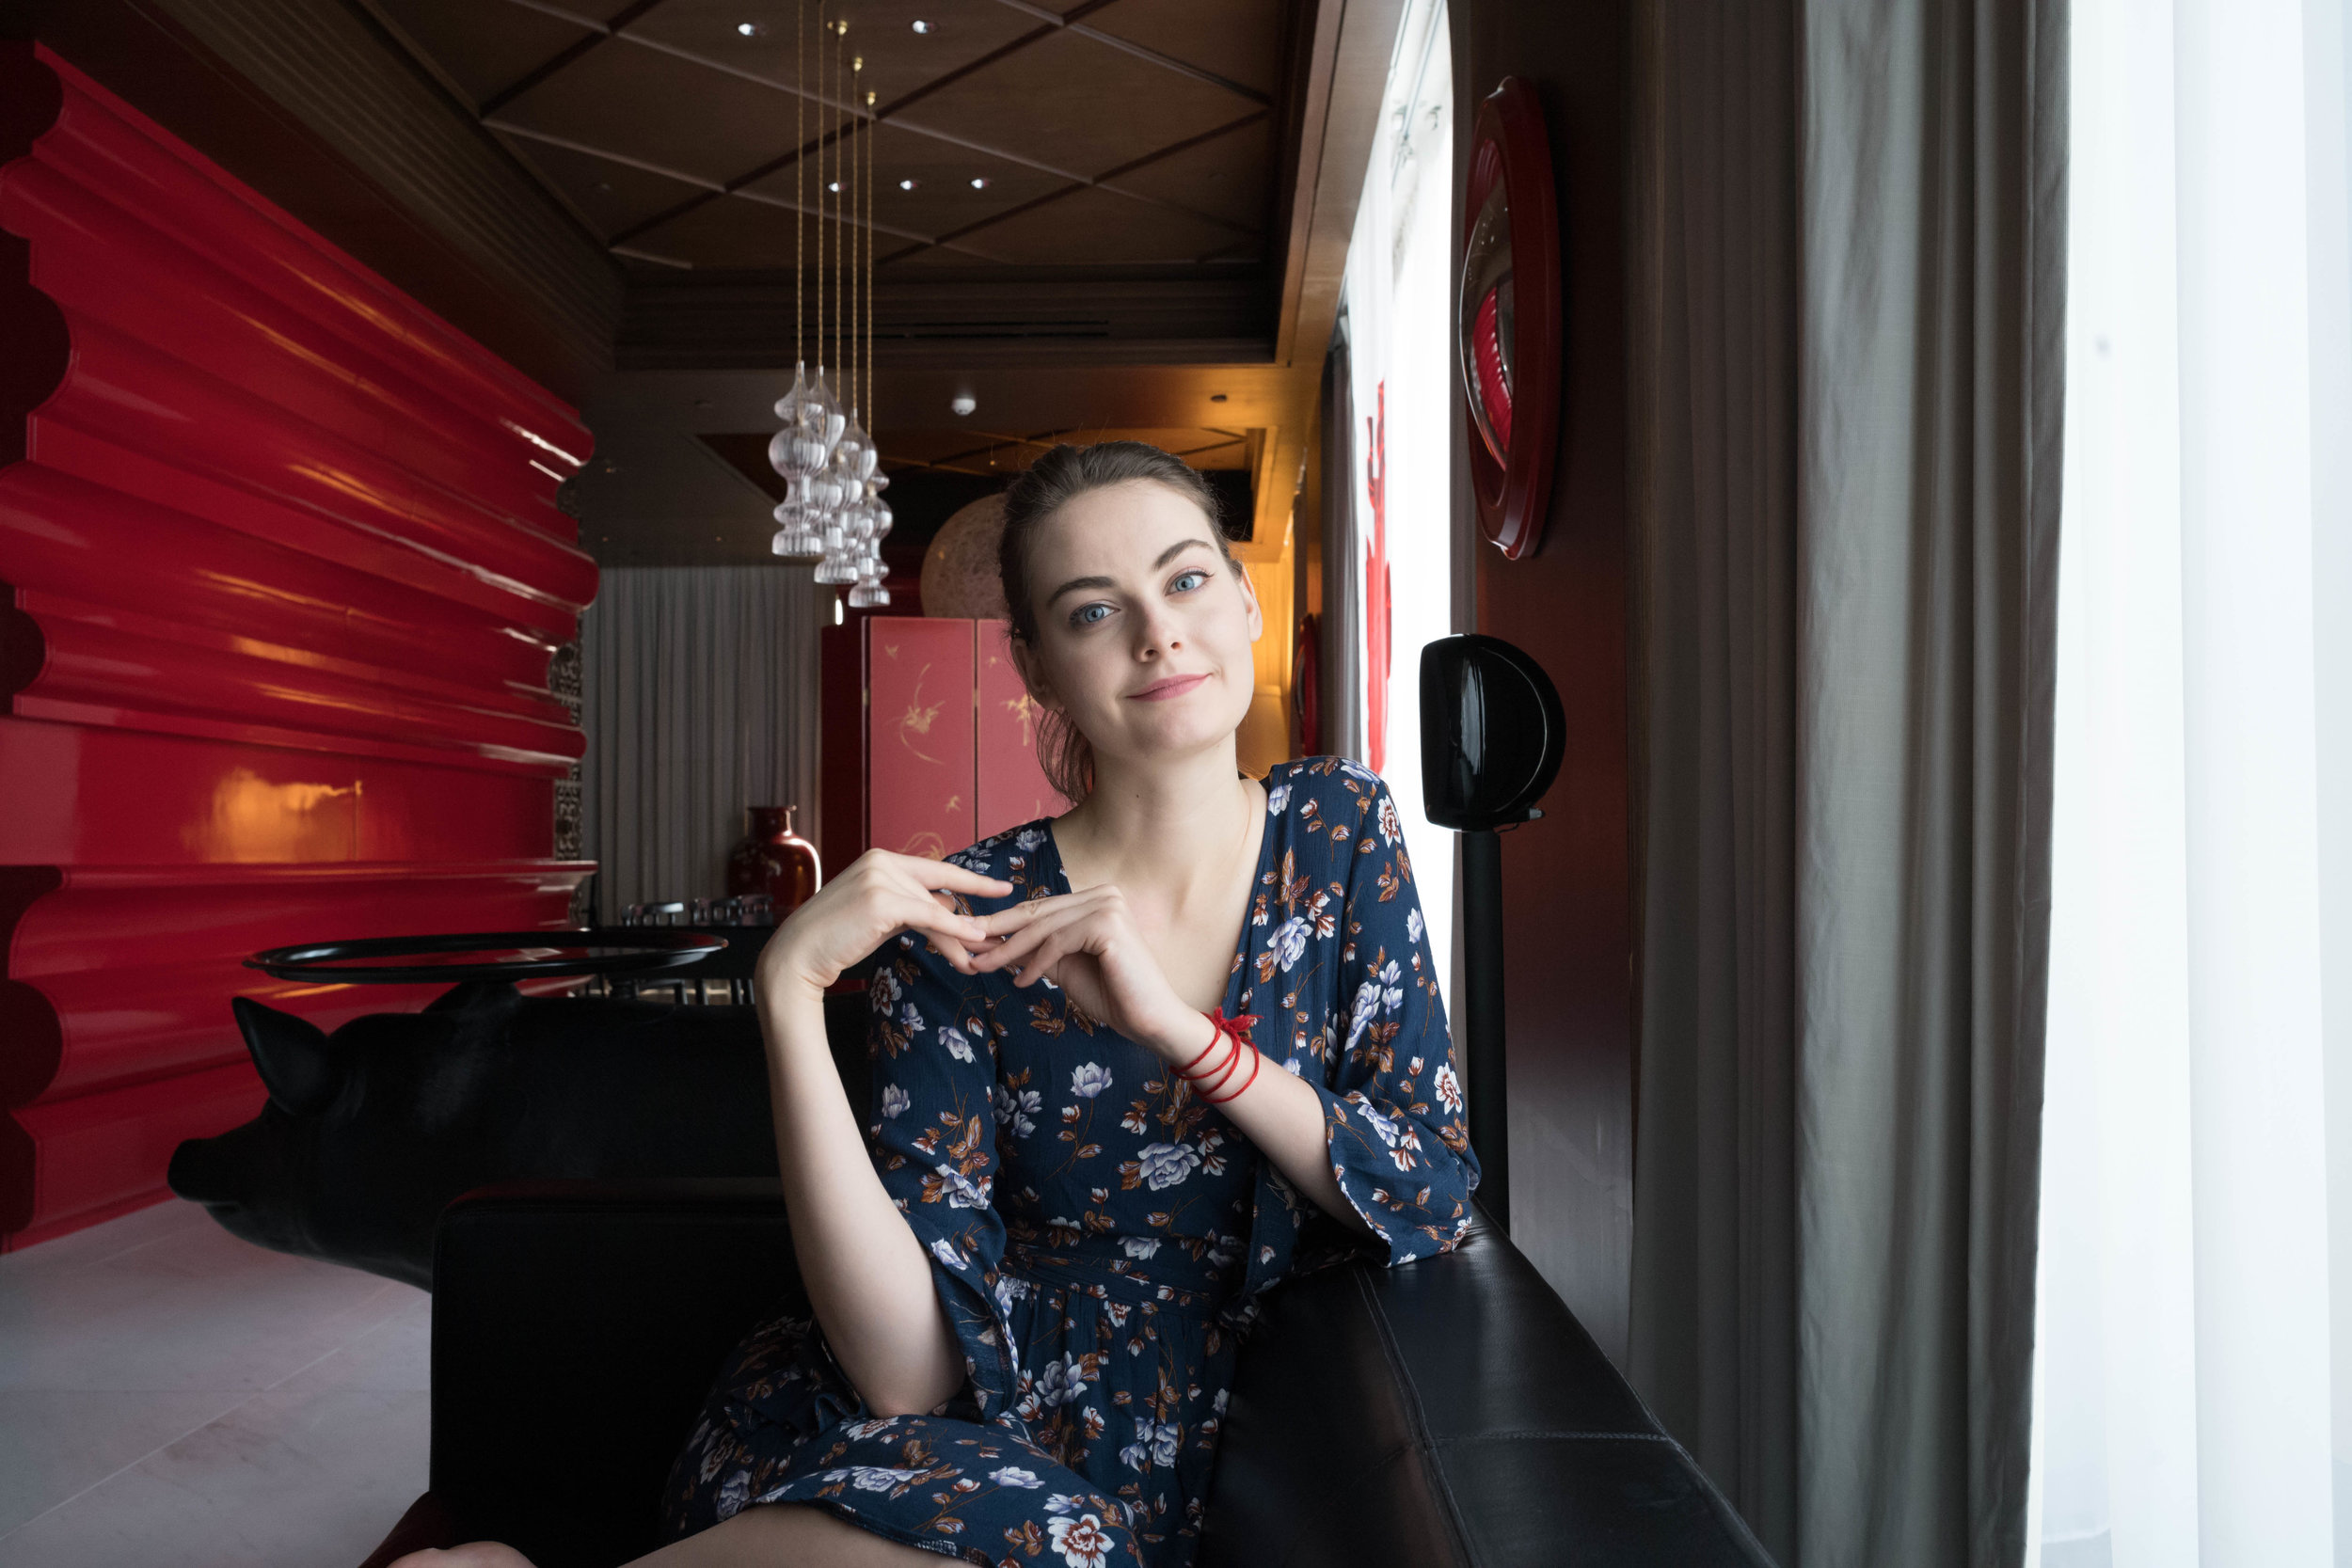 Leica M10 + 28mm f/2.8 Elmarit, version 2 - Stopped down f/8 at normal focusing distance